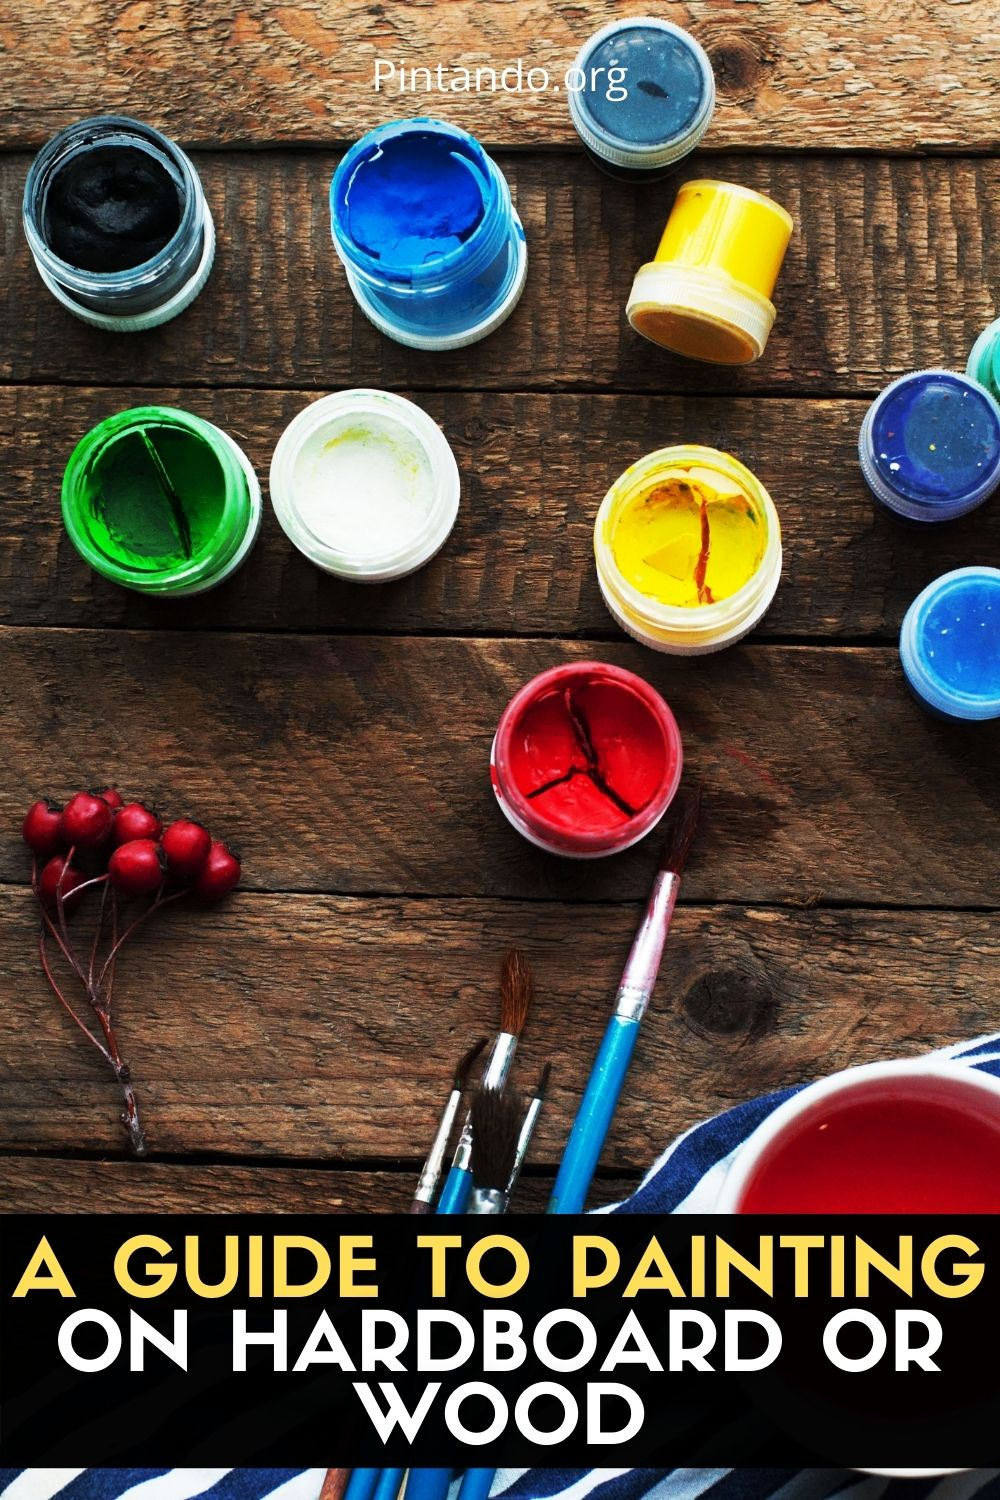 A GUIDE TO PAINTING ON HARDBOARD OR WOOD (2)